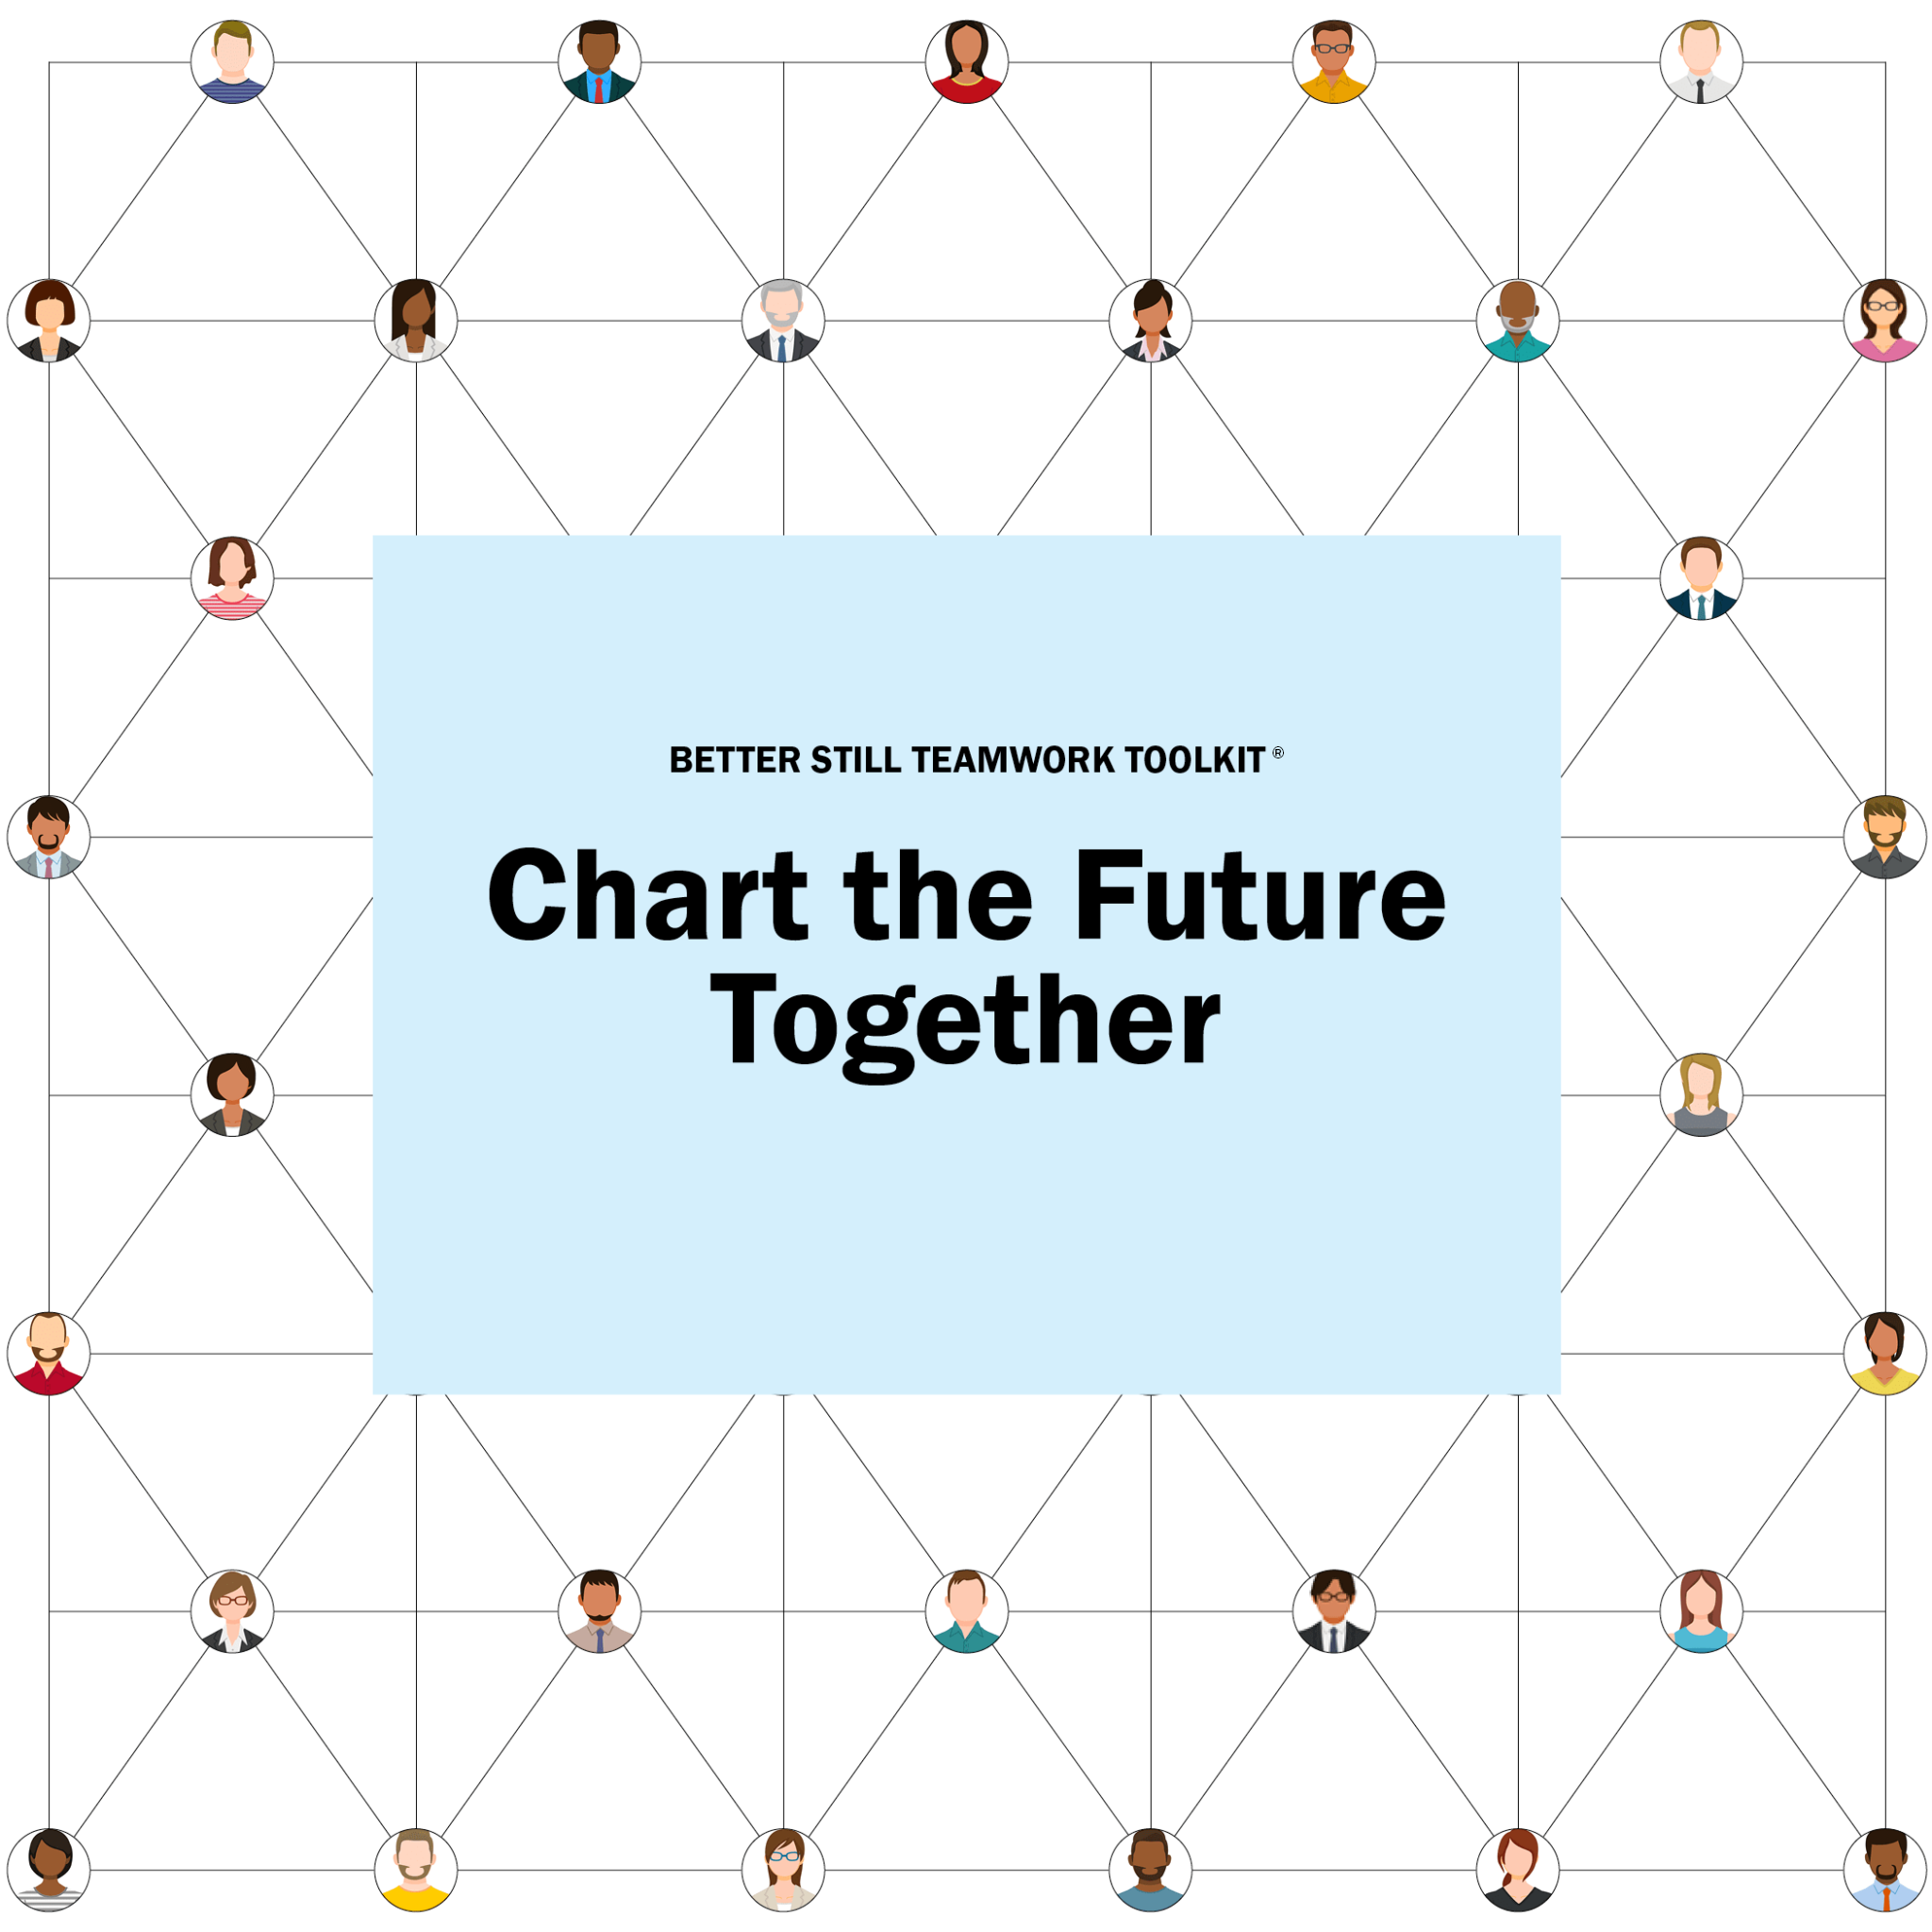 Better Still Teamwork Toolkit—Chart the Future Together